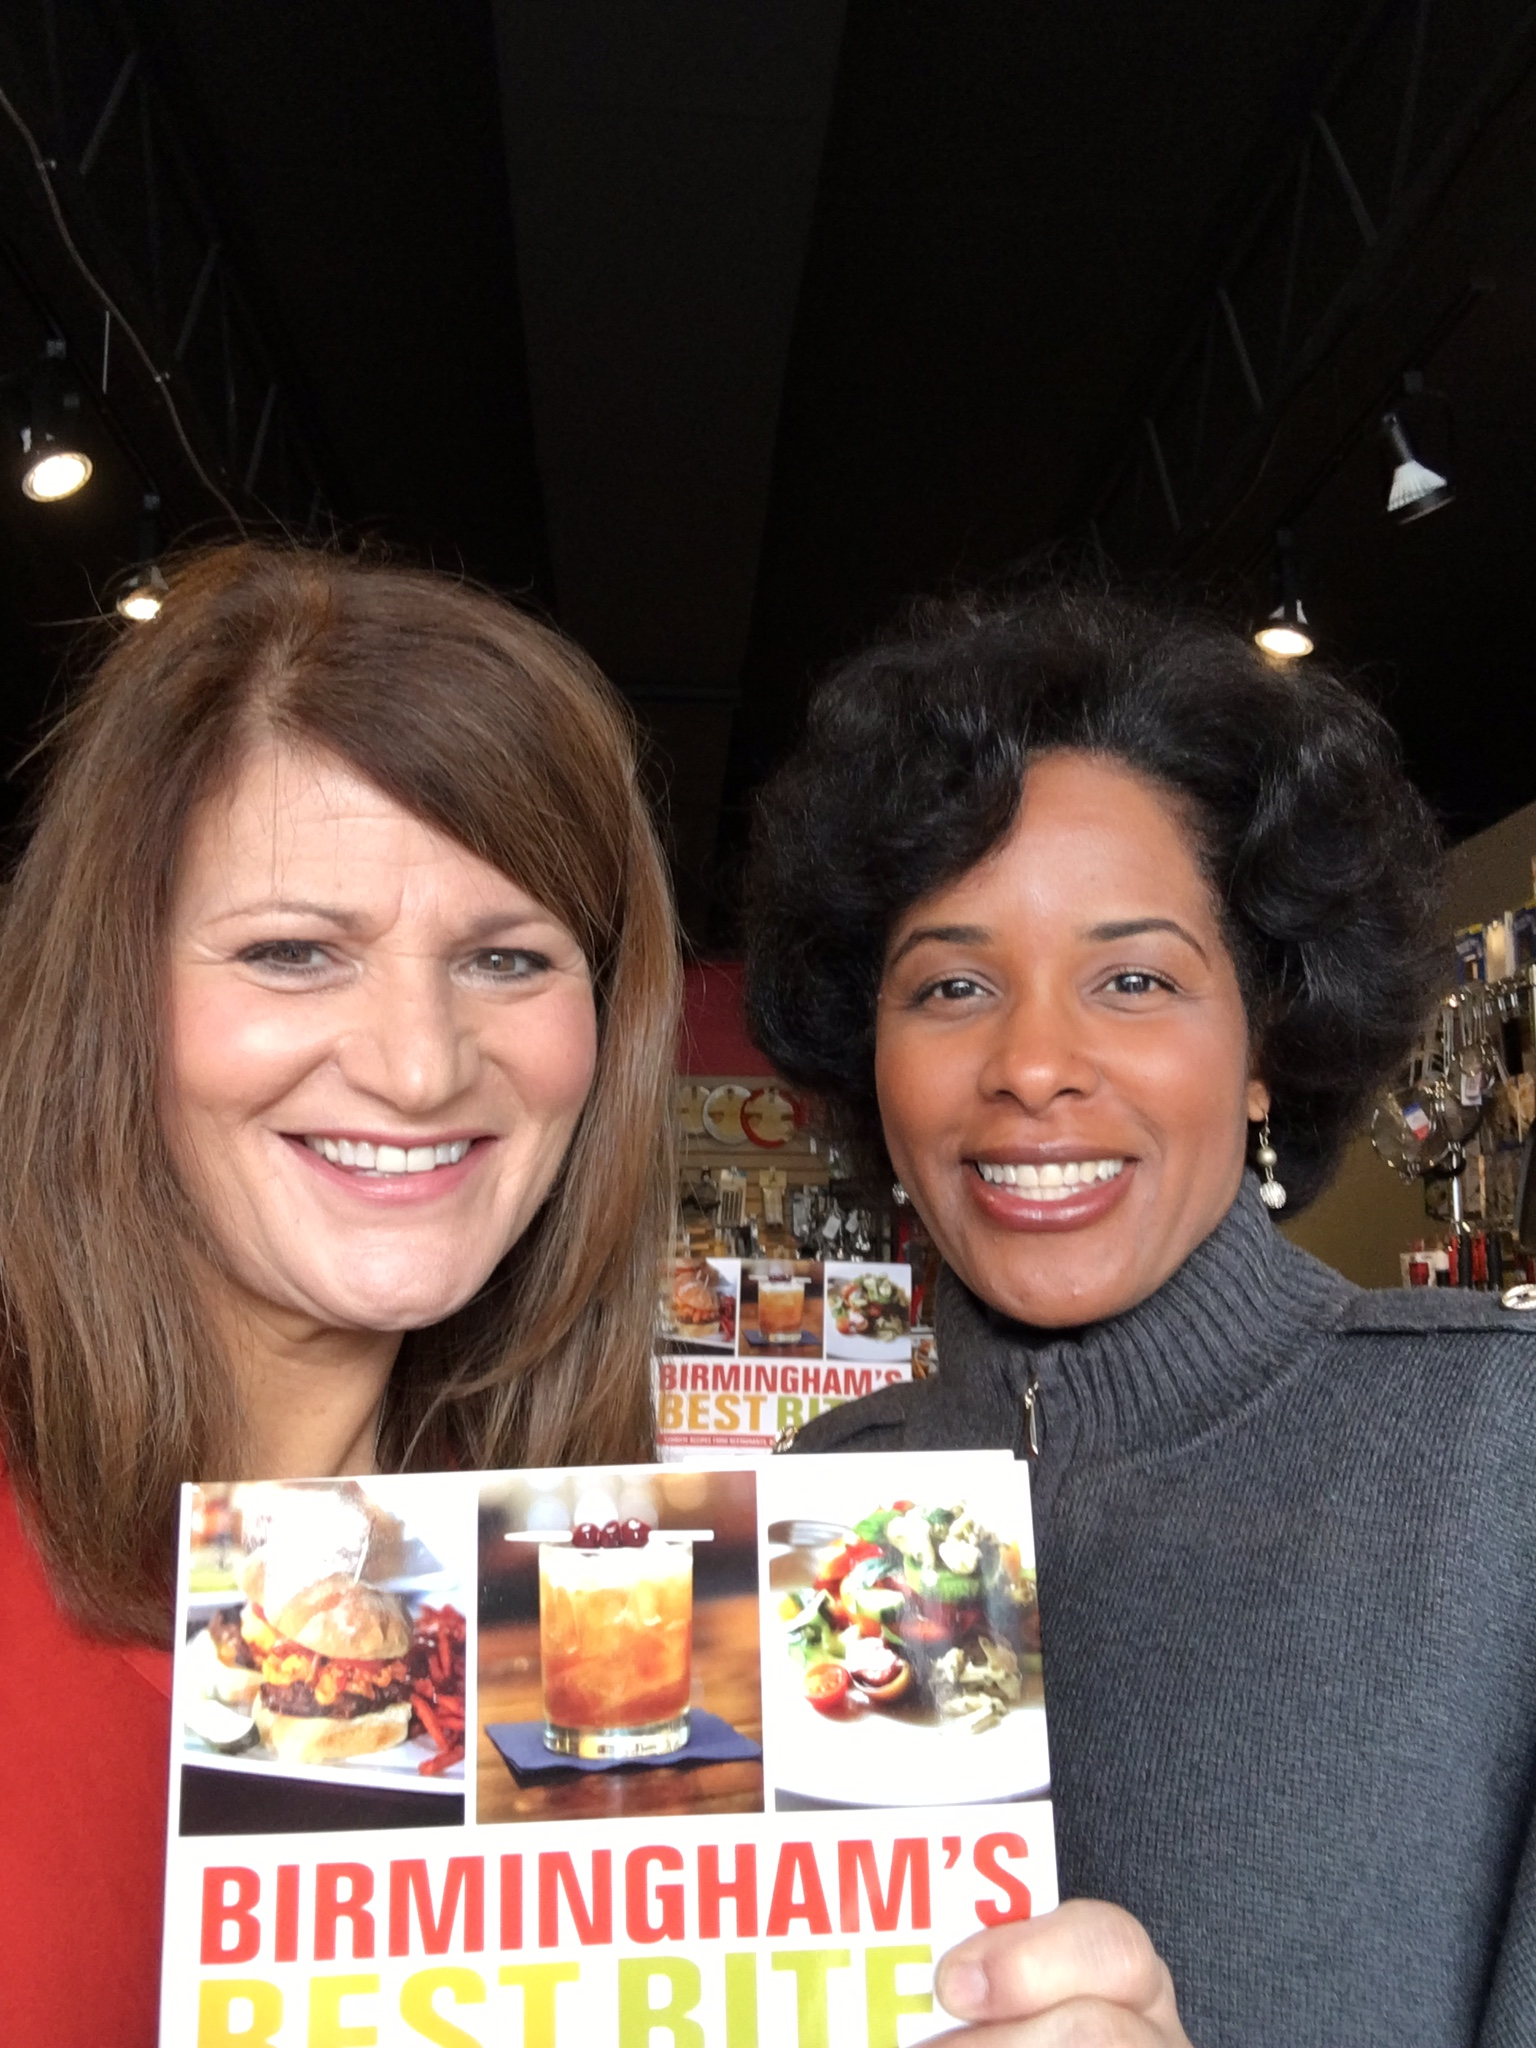 Chanda Temple and I preview our cookbook, Birmingham's Best Bites: Recipes from Birmingham's Restaurants, Bars and Food Trucks